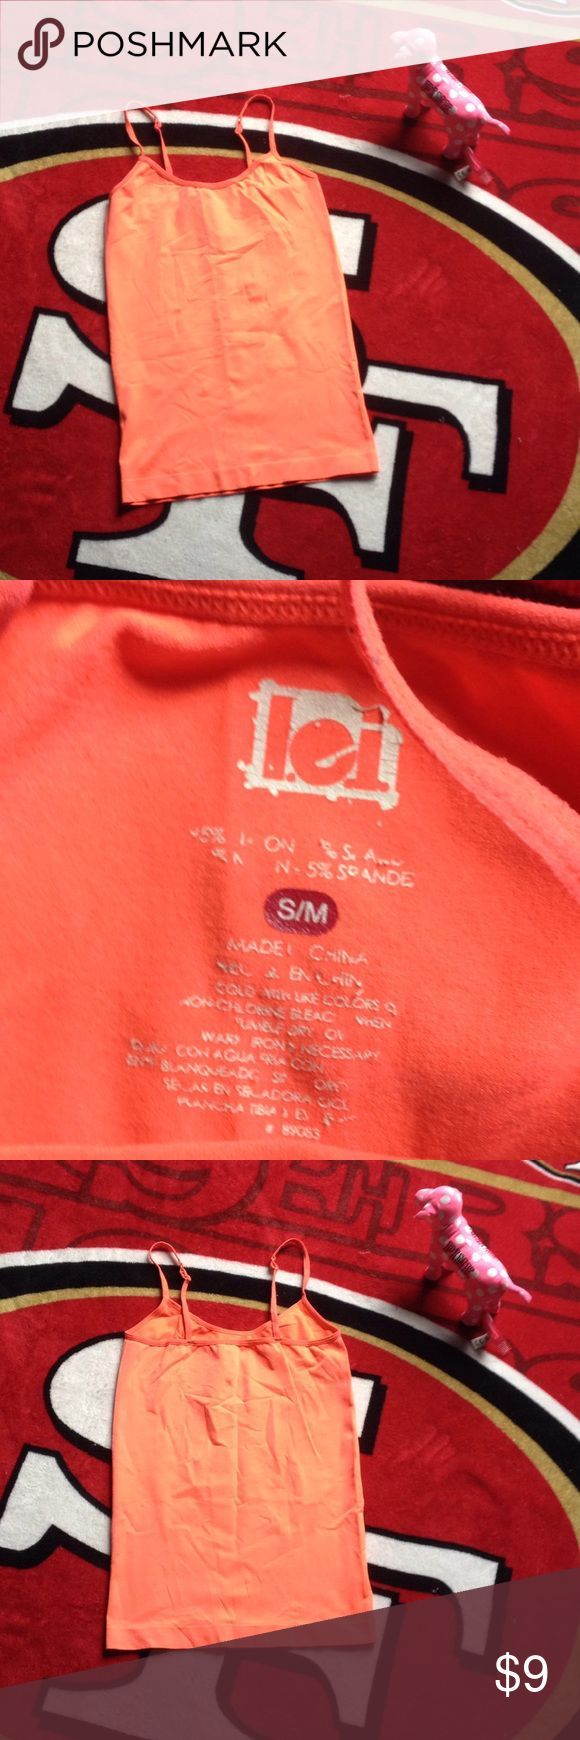 🔥 5/$25 - L.e.i Neon Orange Cami 🔥 🔥 5/$25 - L.e.i Neon Orange Cami 🔥   •Open to all reasonable offers ! ✅ •Will NOT accept LOWBALLS ! 🚫 •Please take into consideration the 20% fee posh takes ! 👍 •NO TRADES, Ask & YOU'LL BE BLOCKED IMMEDIATELY ! 🚫 •Any & all questions are welcomed ! ✅ •Pet Friendly Home 🐶😺 but Smoke FREE !  •NO HOLDS ➡️ Items are cross-listed ! •NO FREE SHIPPING ! 🚫 l.e.i Tops Camisoles